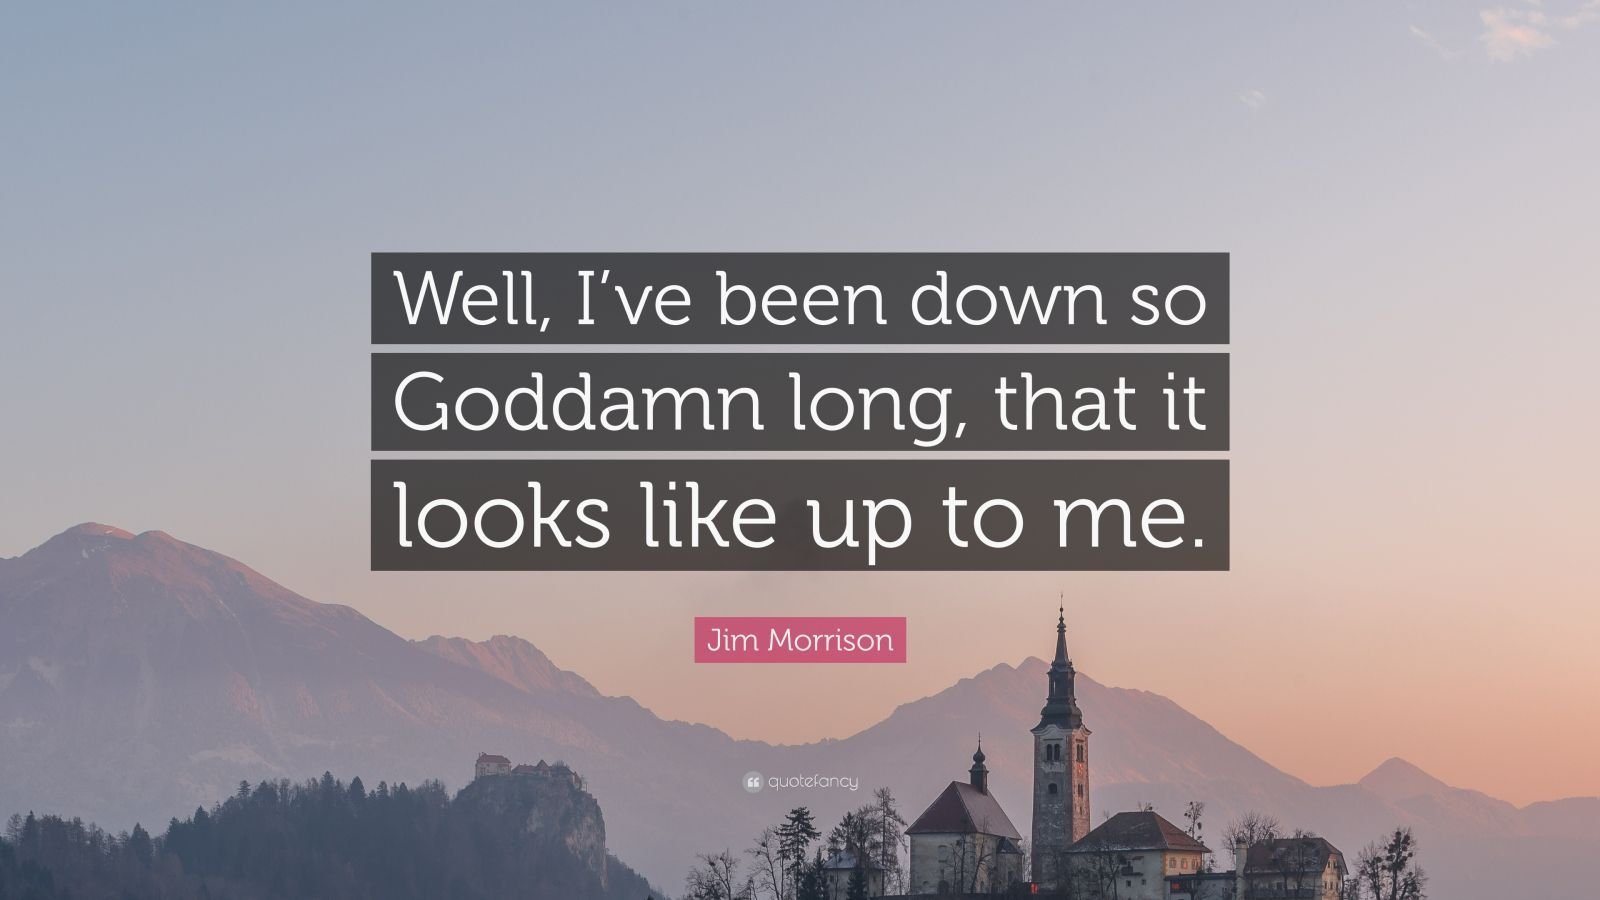 """Jim Morrison Quote: """"Well, I've been down so Goddamn long, that it looks like up to me."""""""